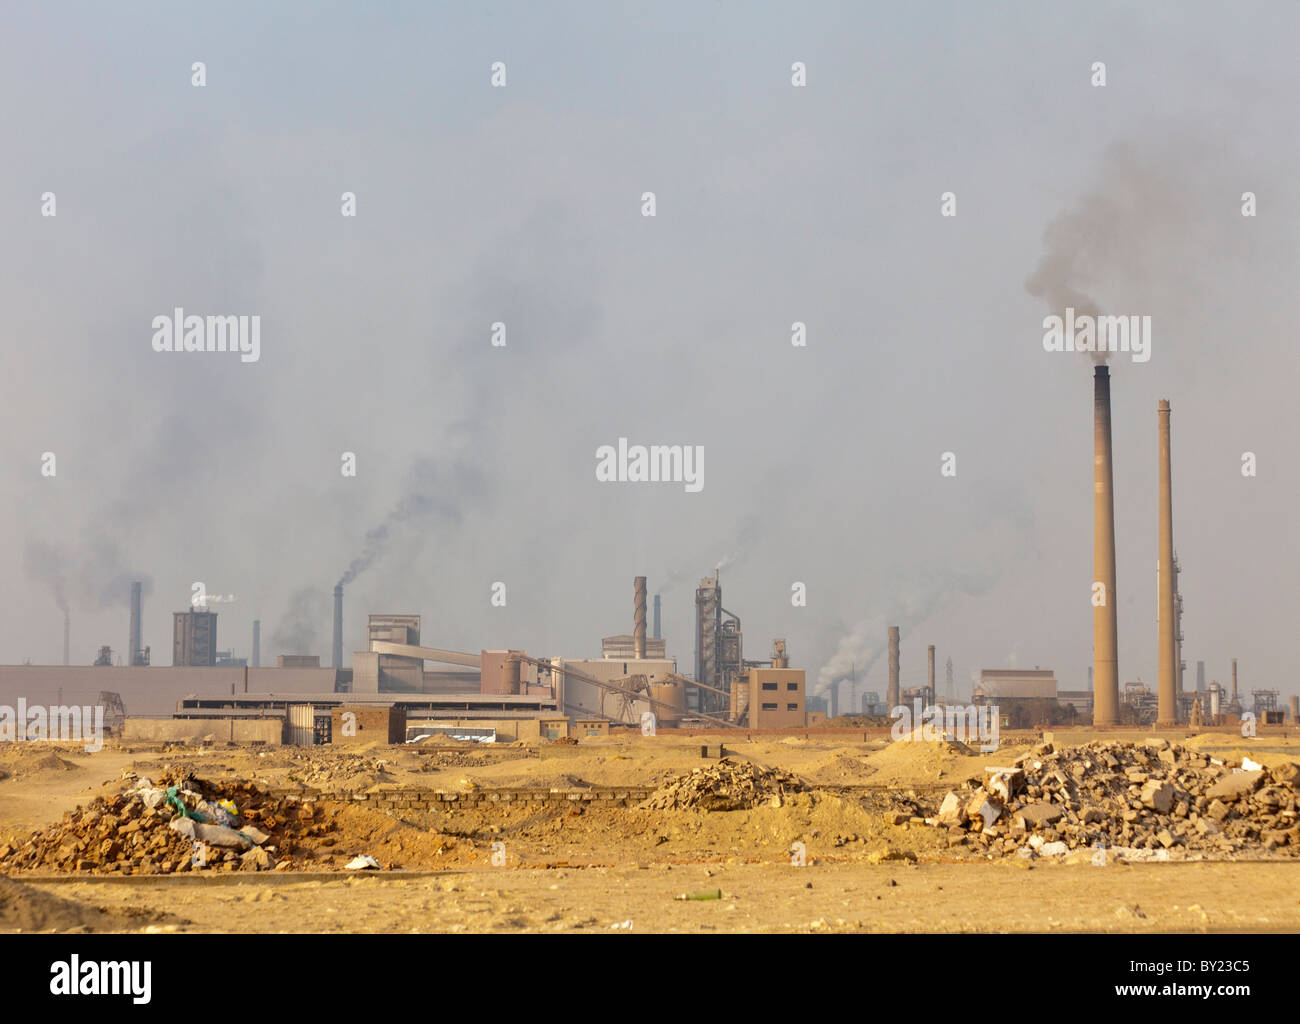 factories pouring out polluted smoke, Helwan, Cairo, Egypt - Stock Image